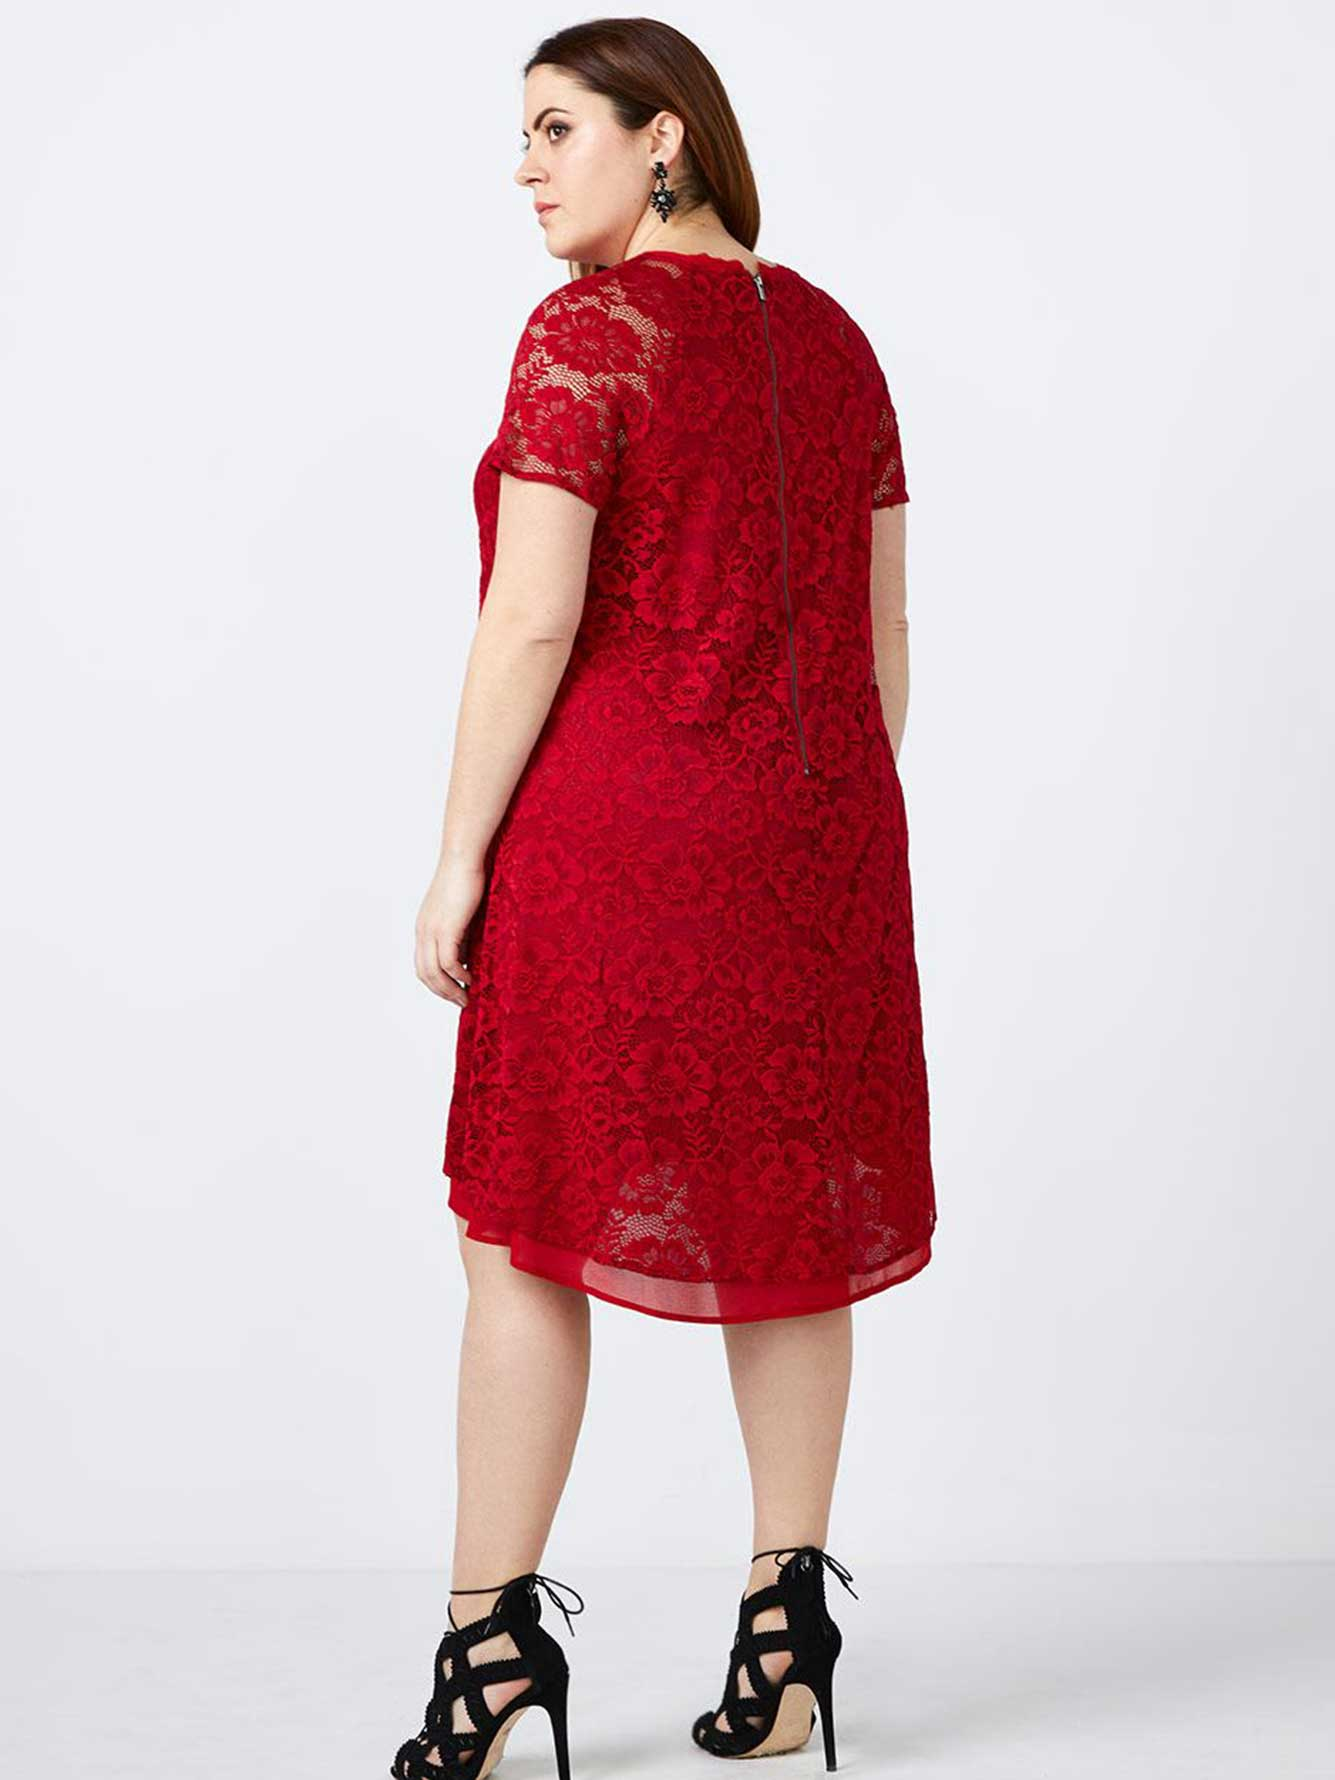 Lace Swing Dress - In Every Story